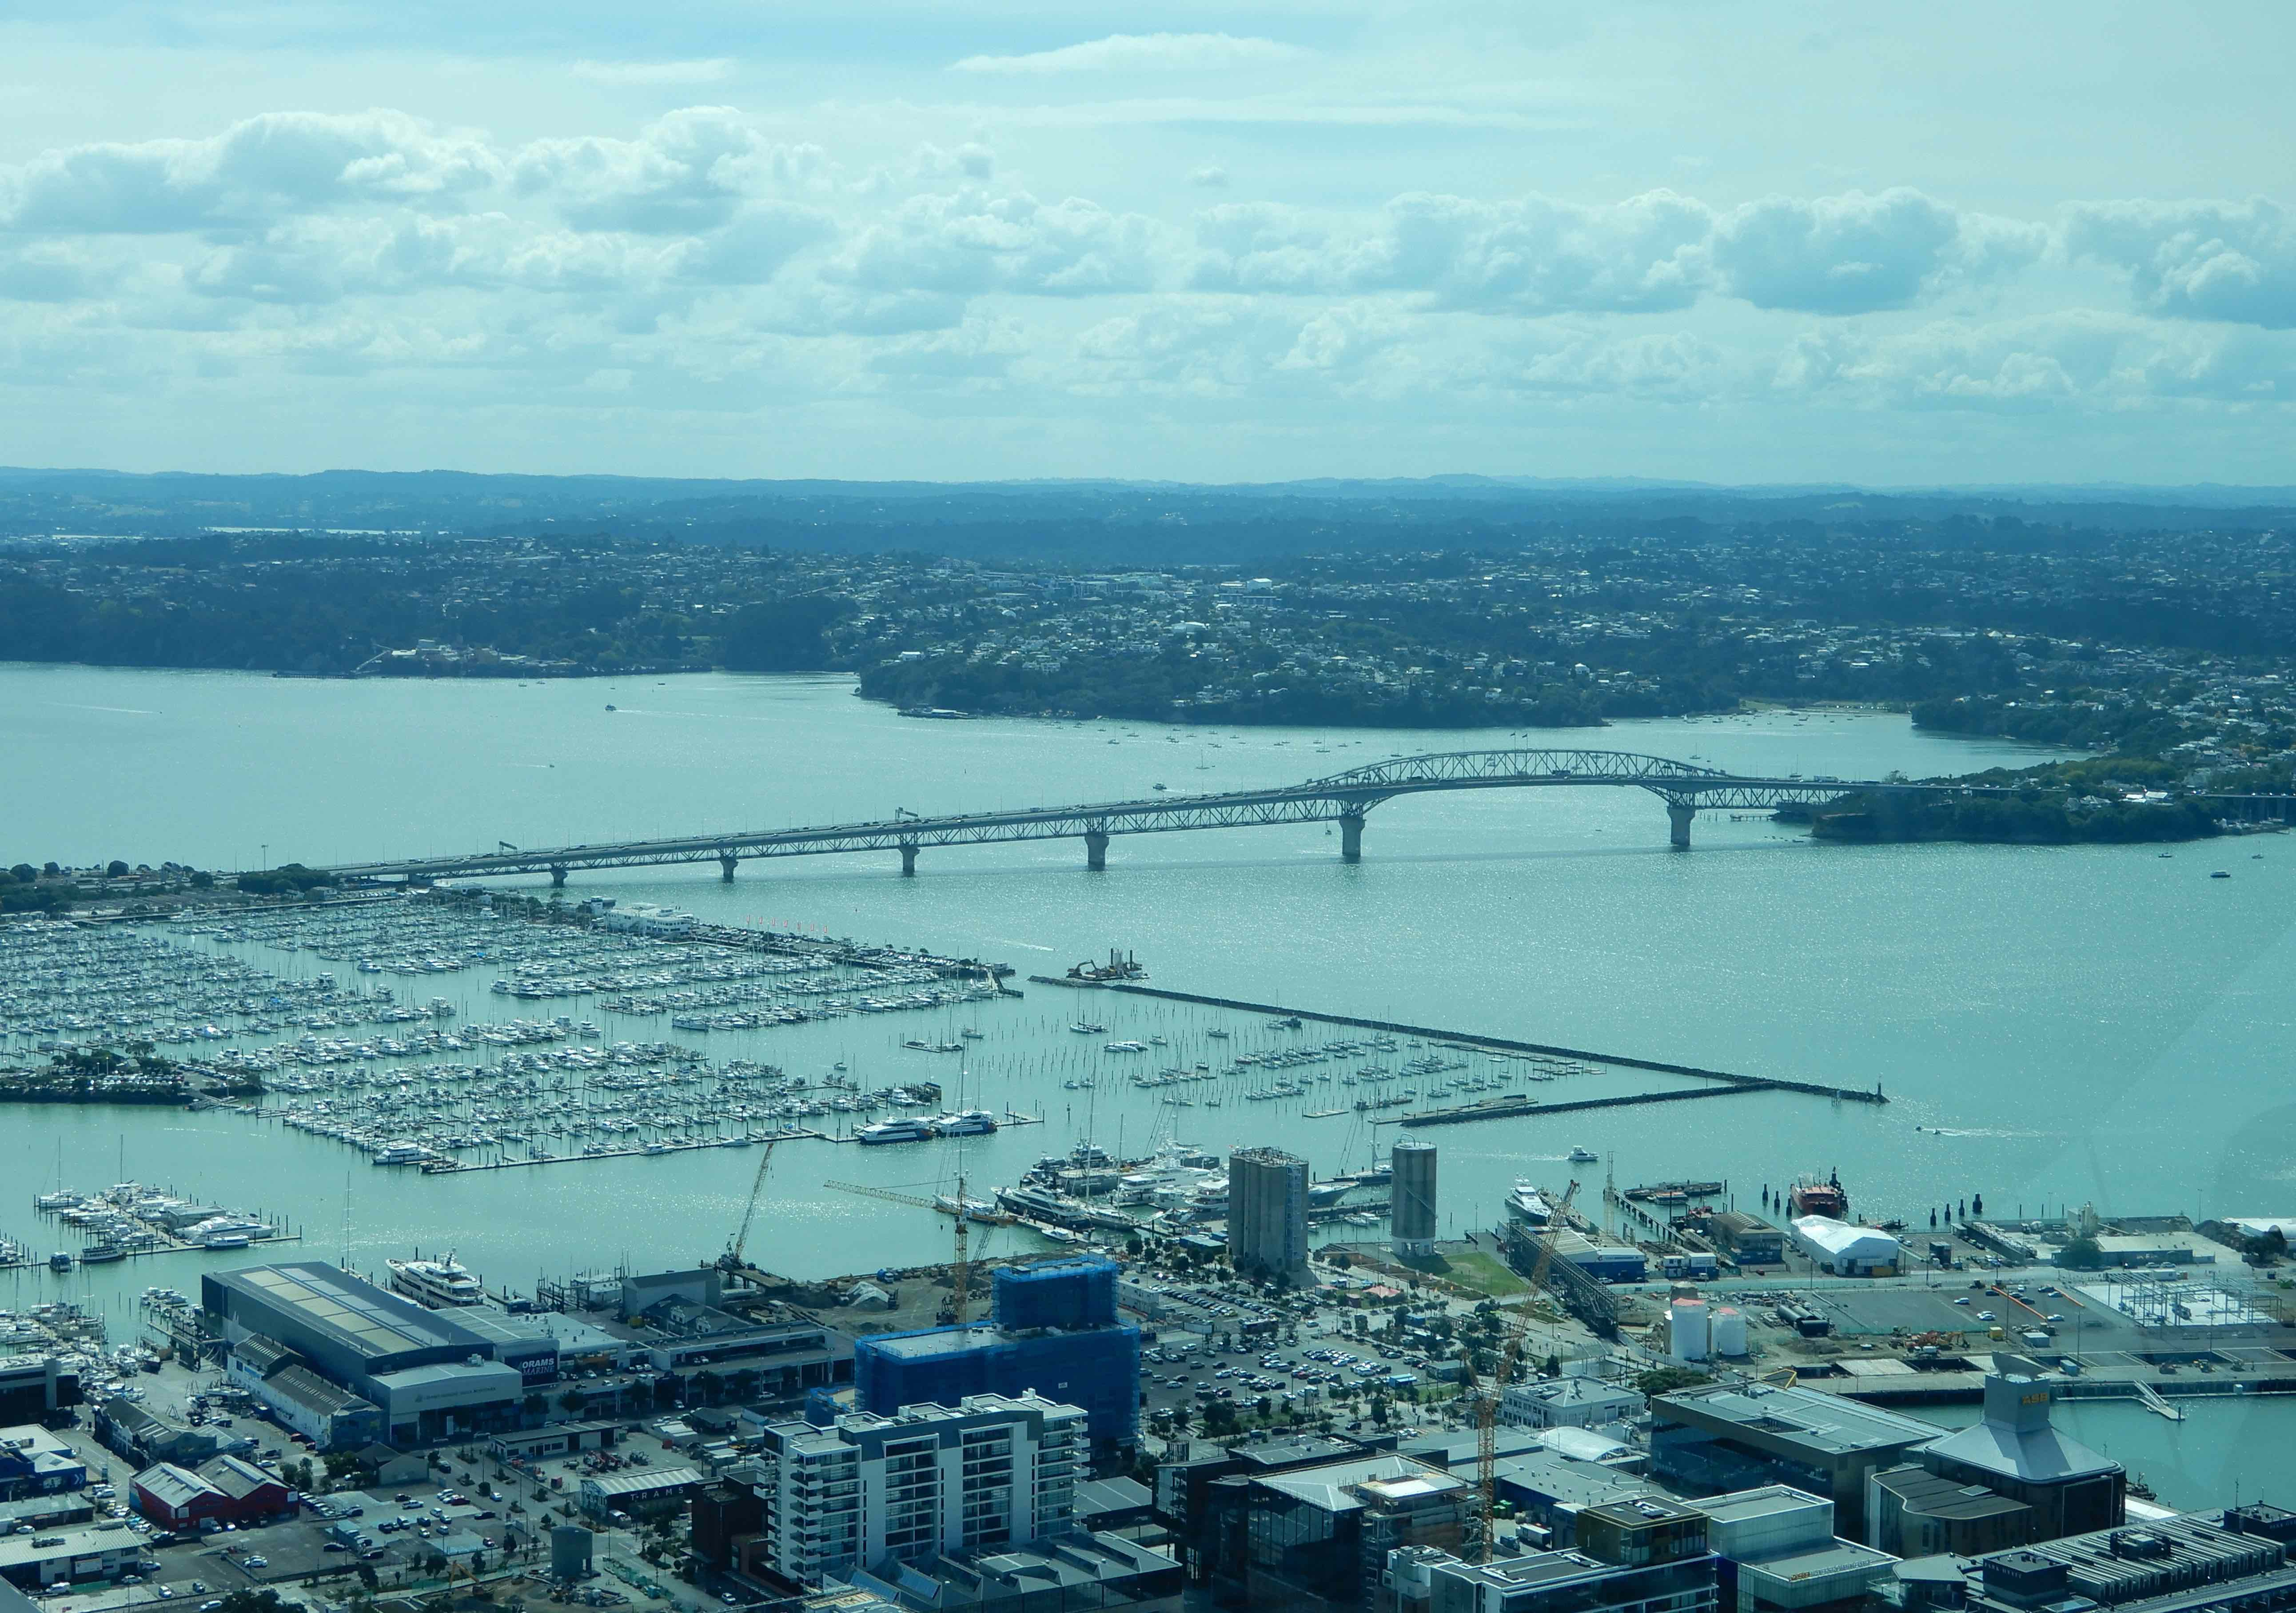 8.Westhaven Marina & Auckland Harbour Bridge